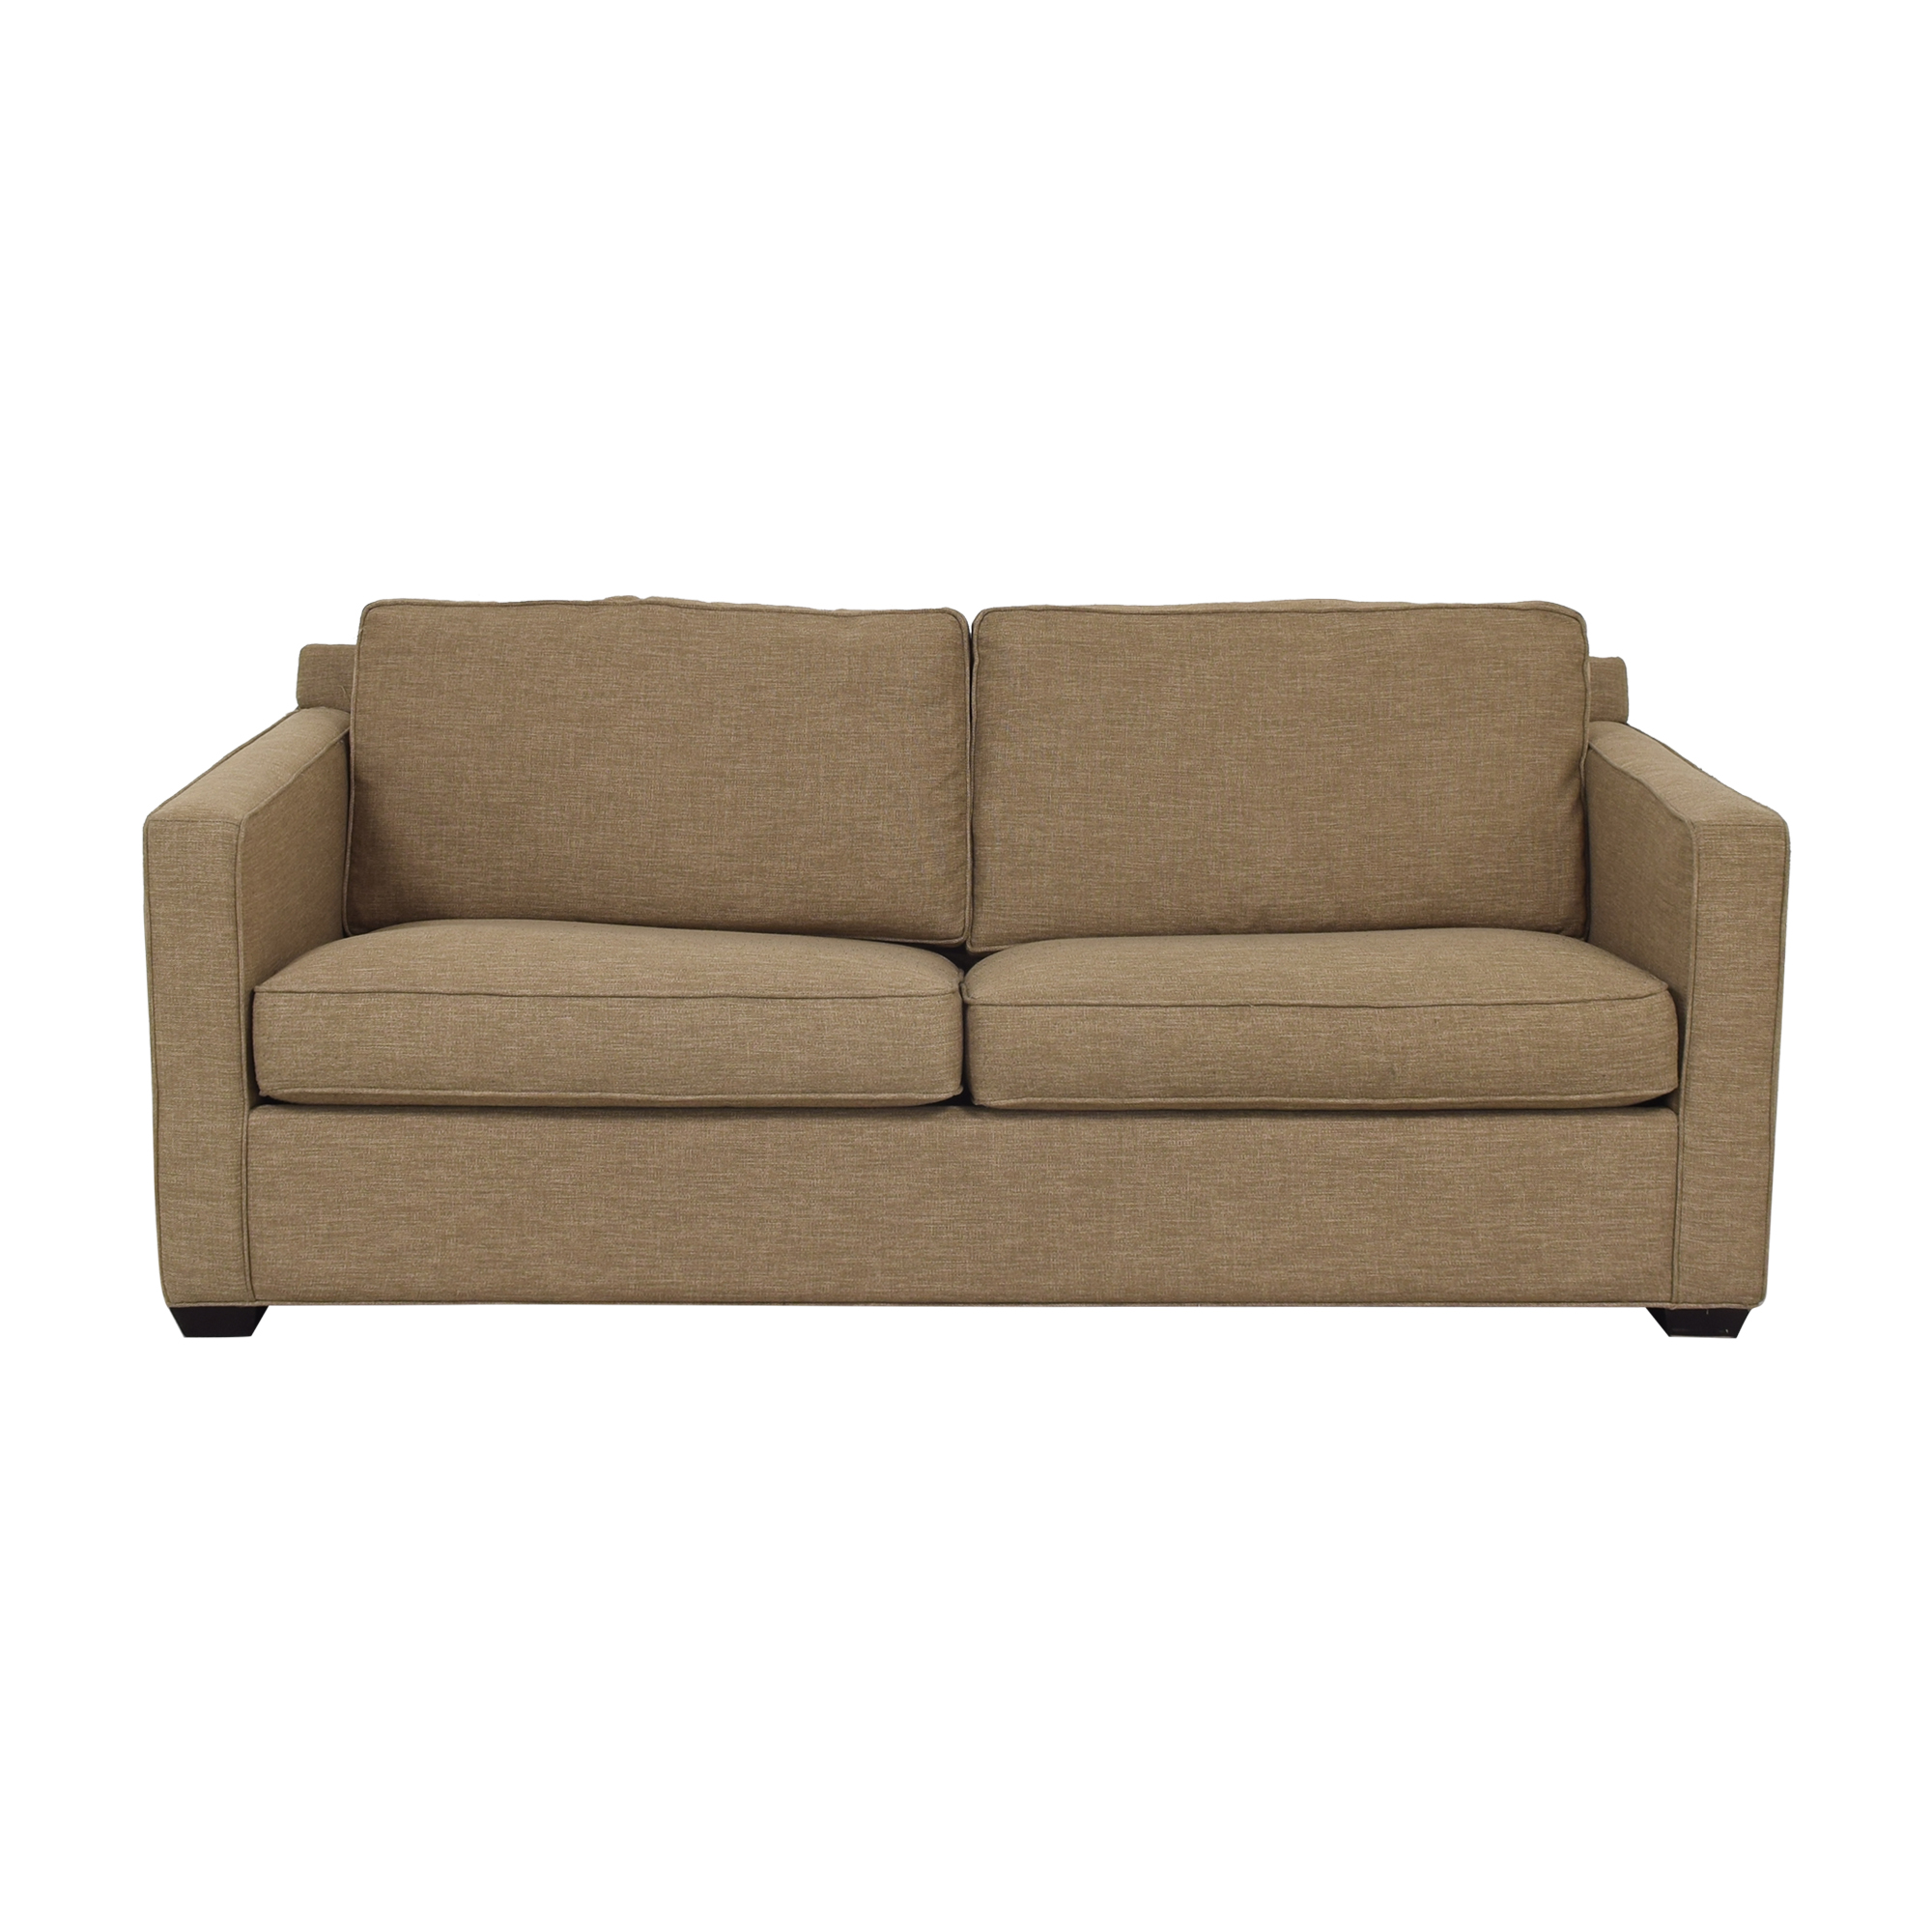 Crate & Barrel Crate & Barrel Axis II 2-Seat Queen Sleeper Sofa dimensions